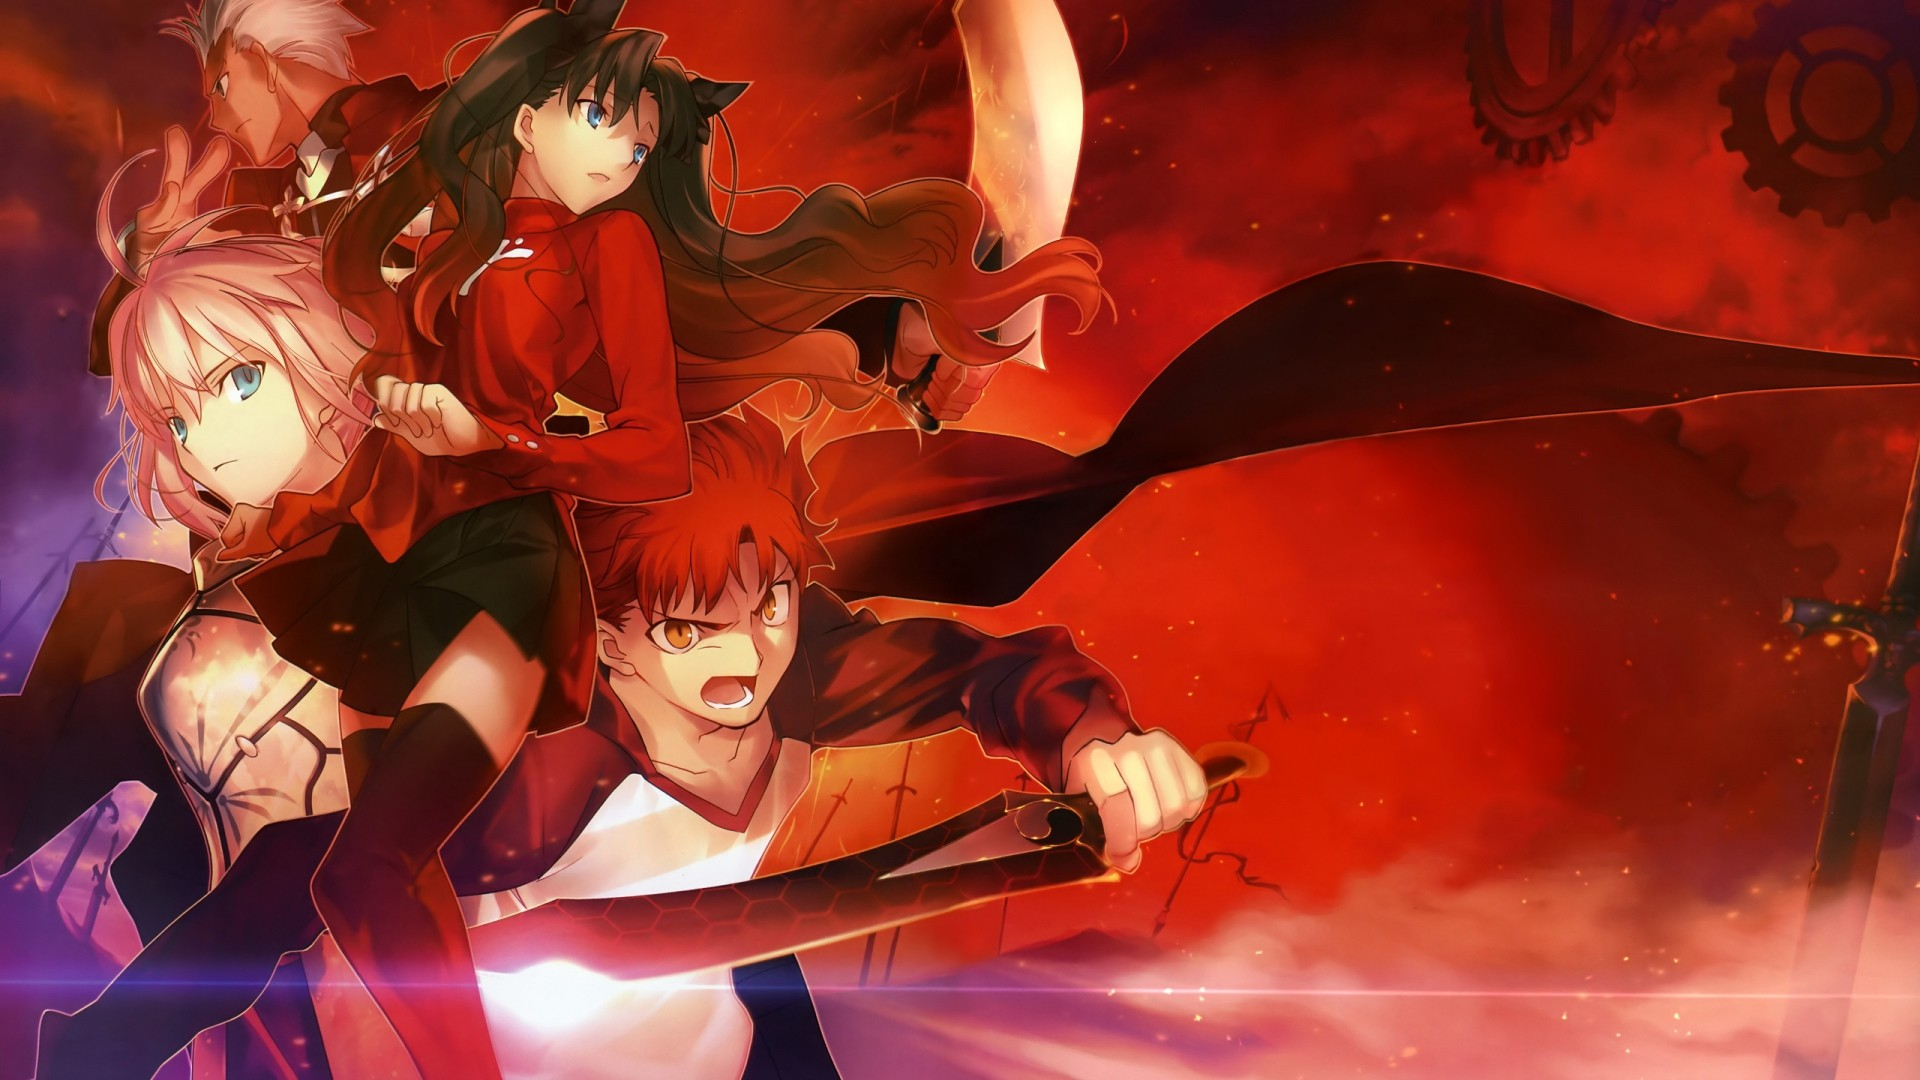 Wallpaper fate stay night, anime, warrior, space, background